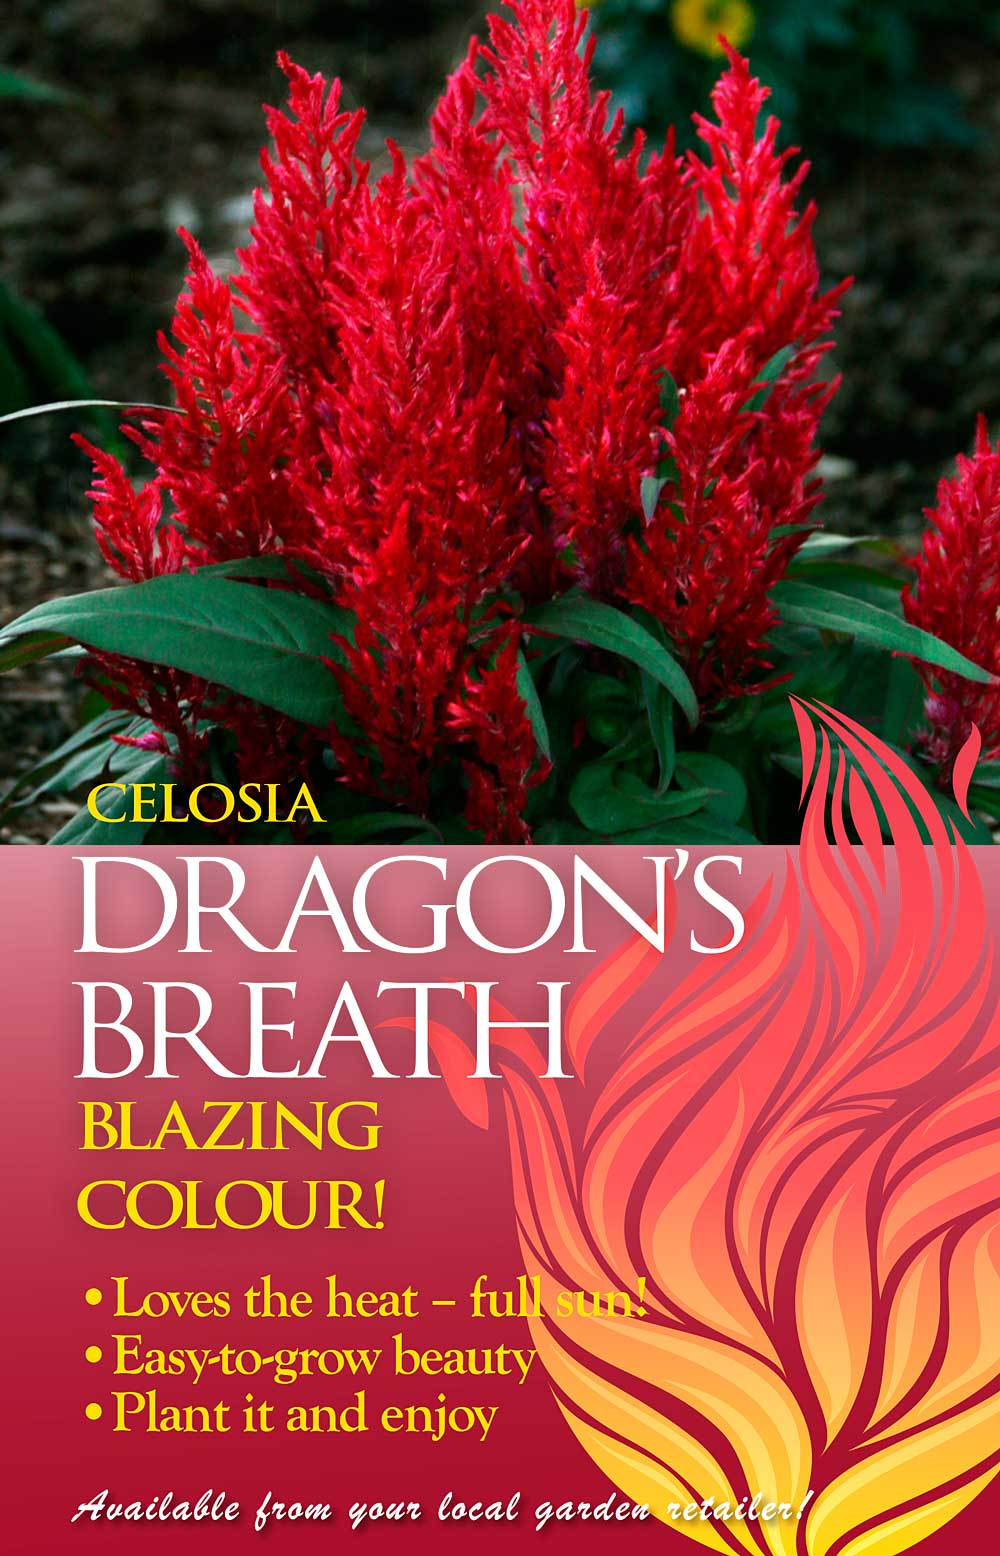 Celosia Dragons Breath Ball Australia